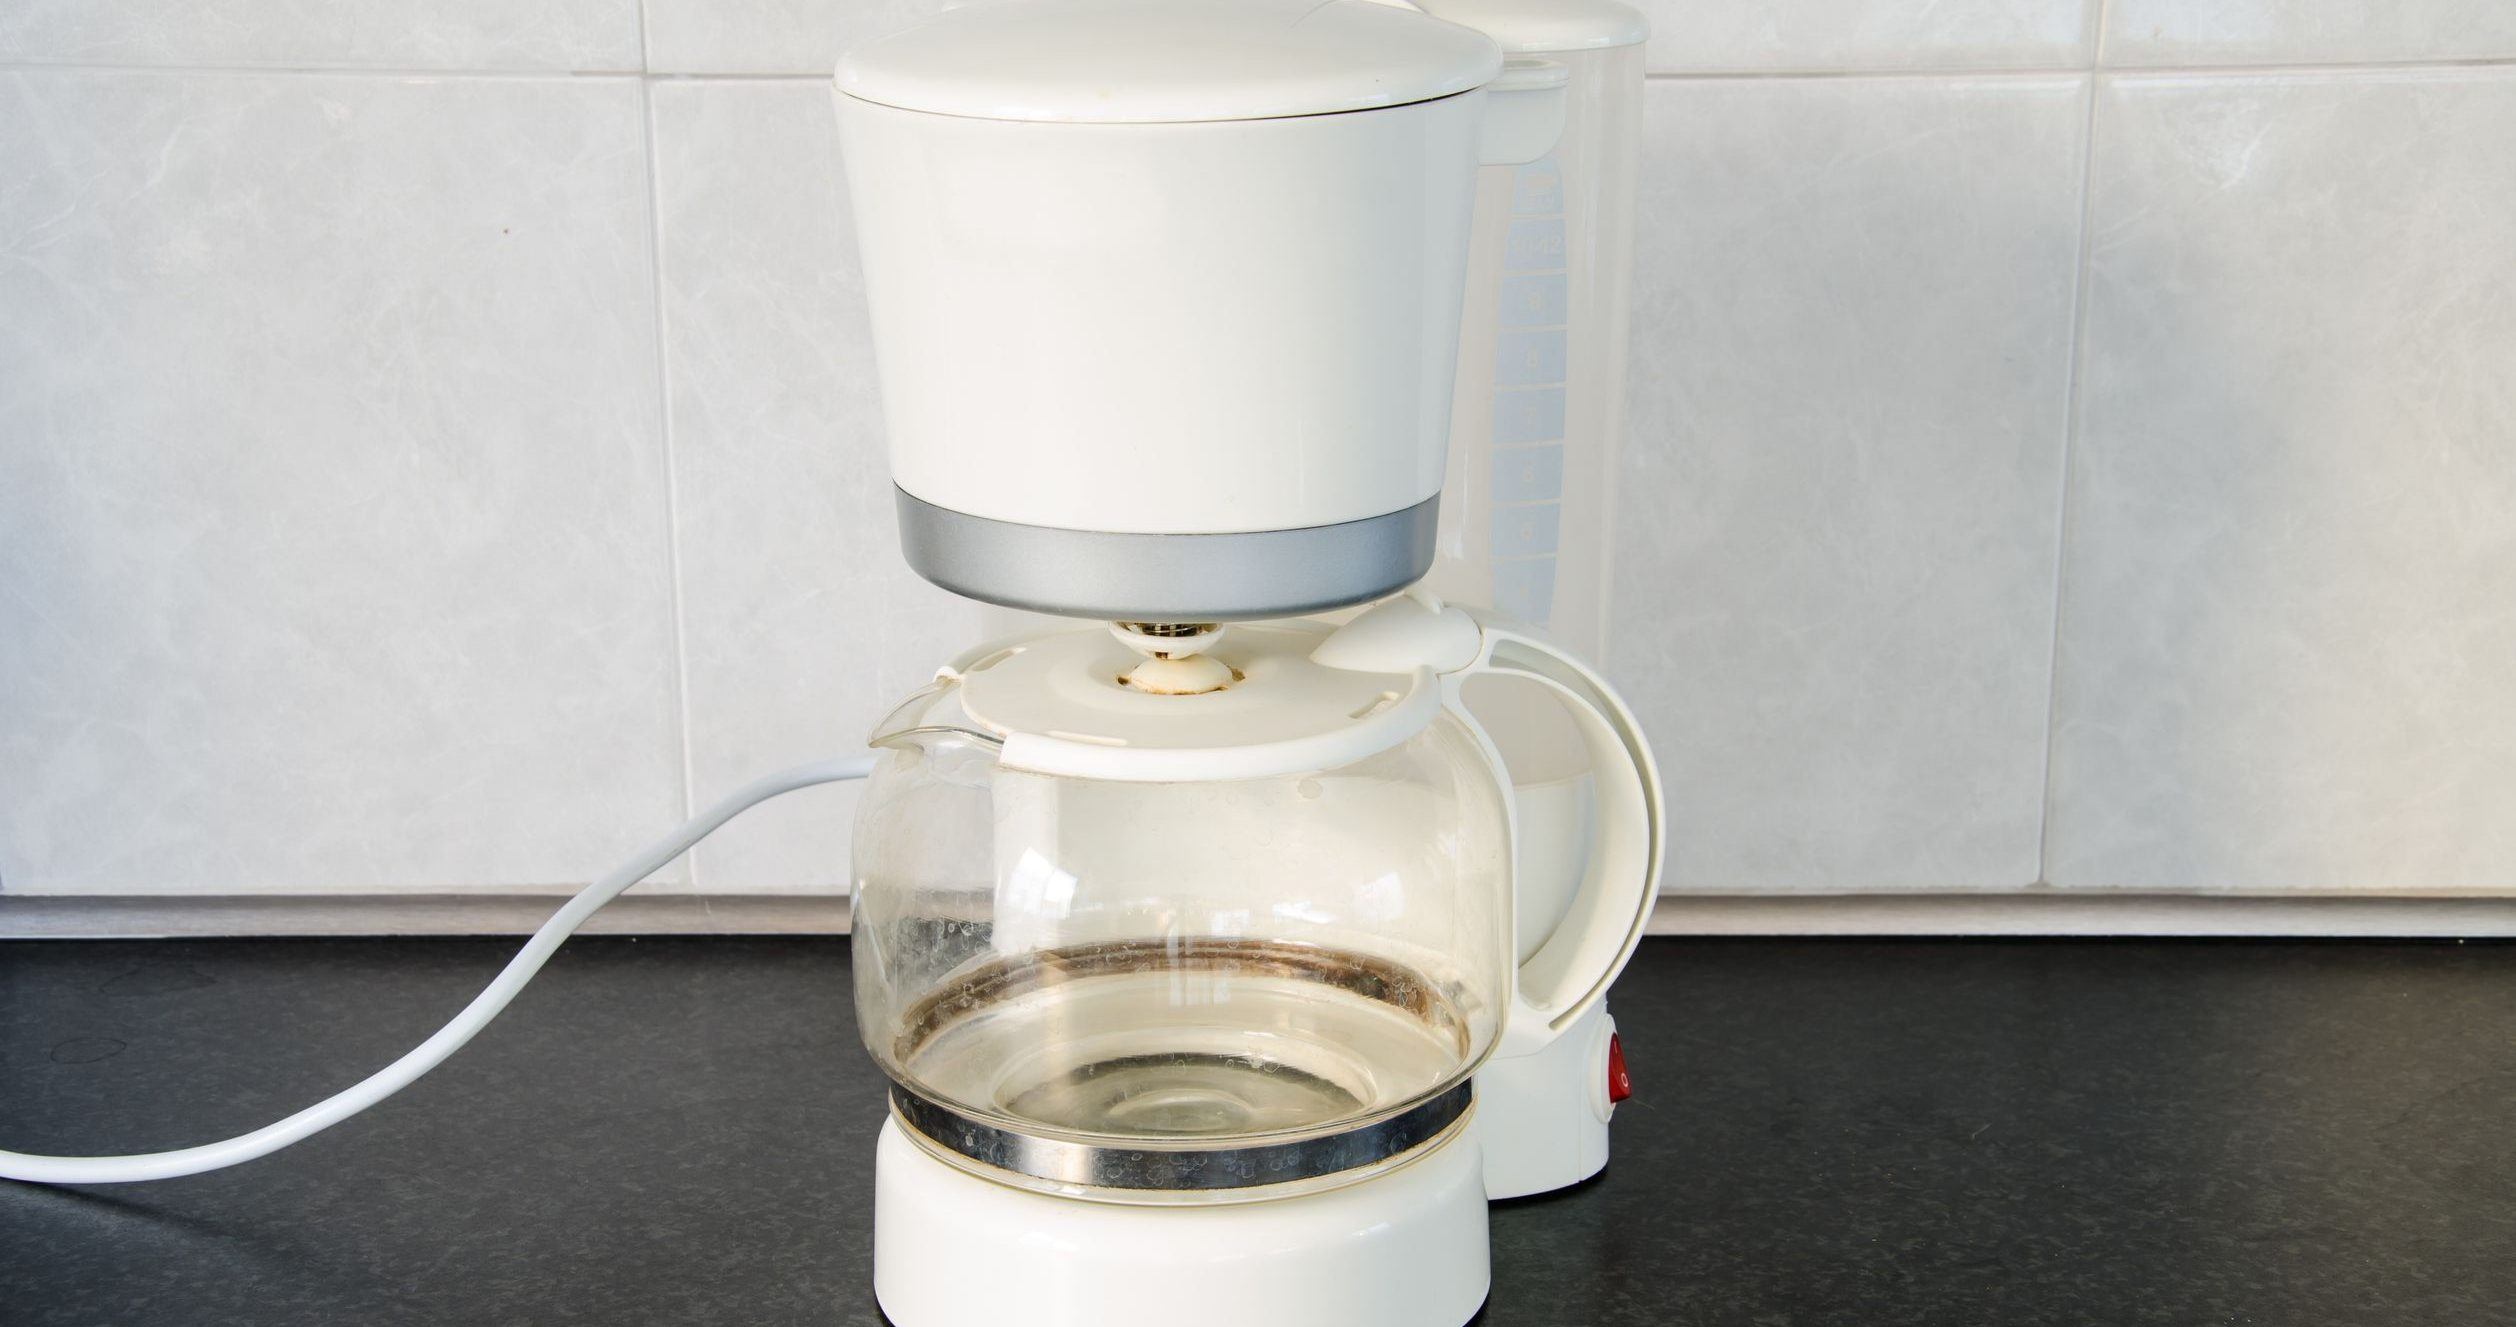 american electric coffee maker